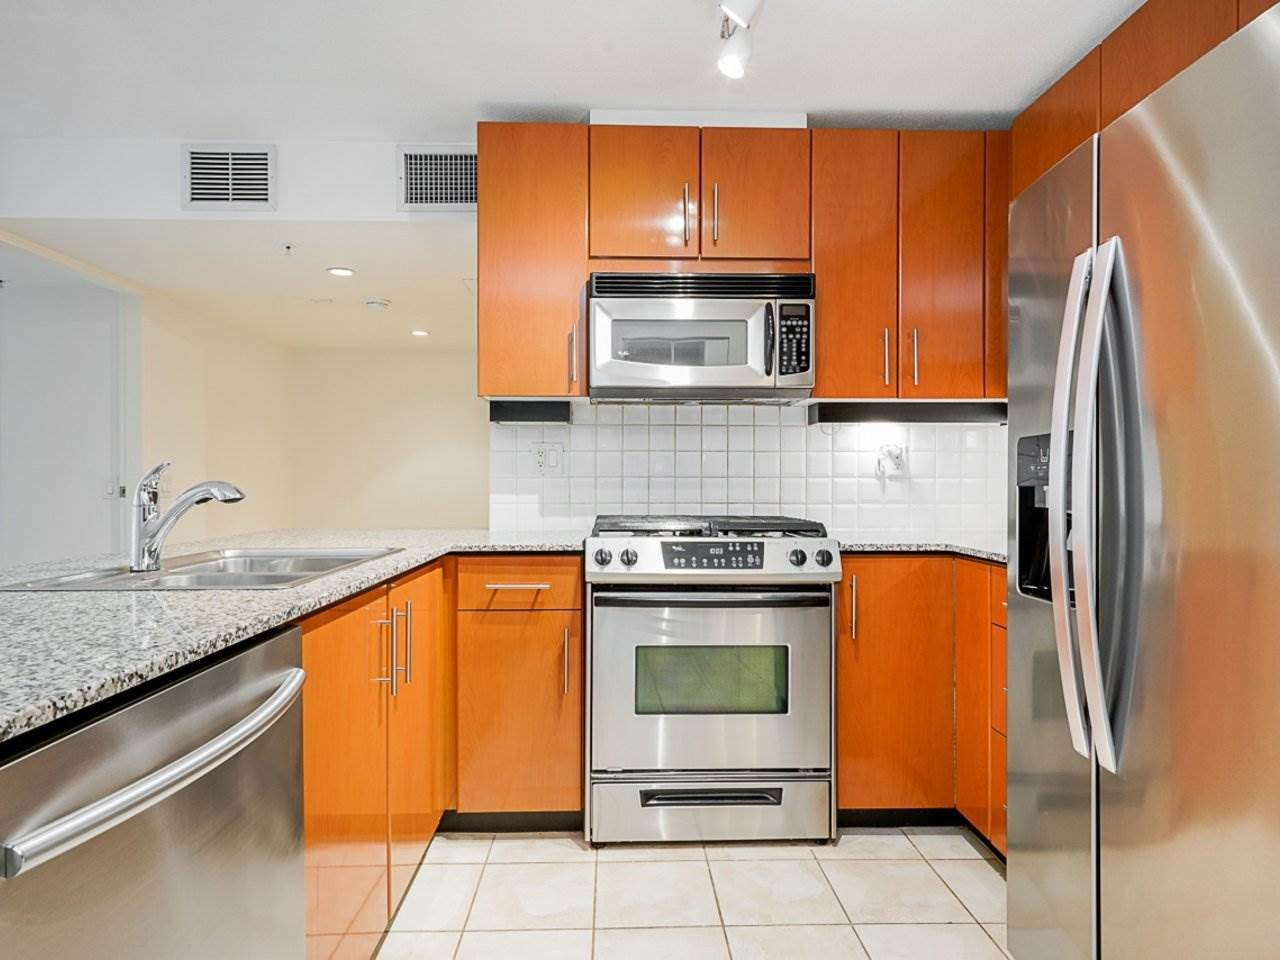 604 188 E ESPLANADE - Lower Lonsdale Apartment/Condo for sale, 2 Bedrooms (R2528391) - #8